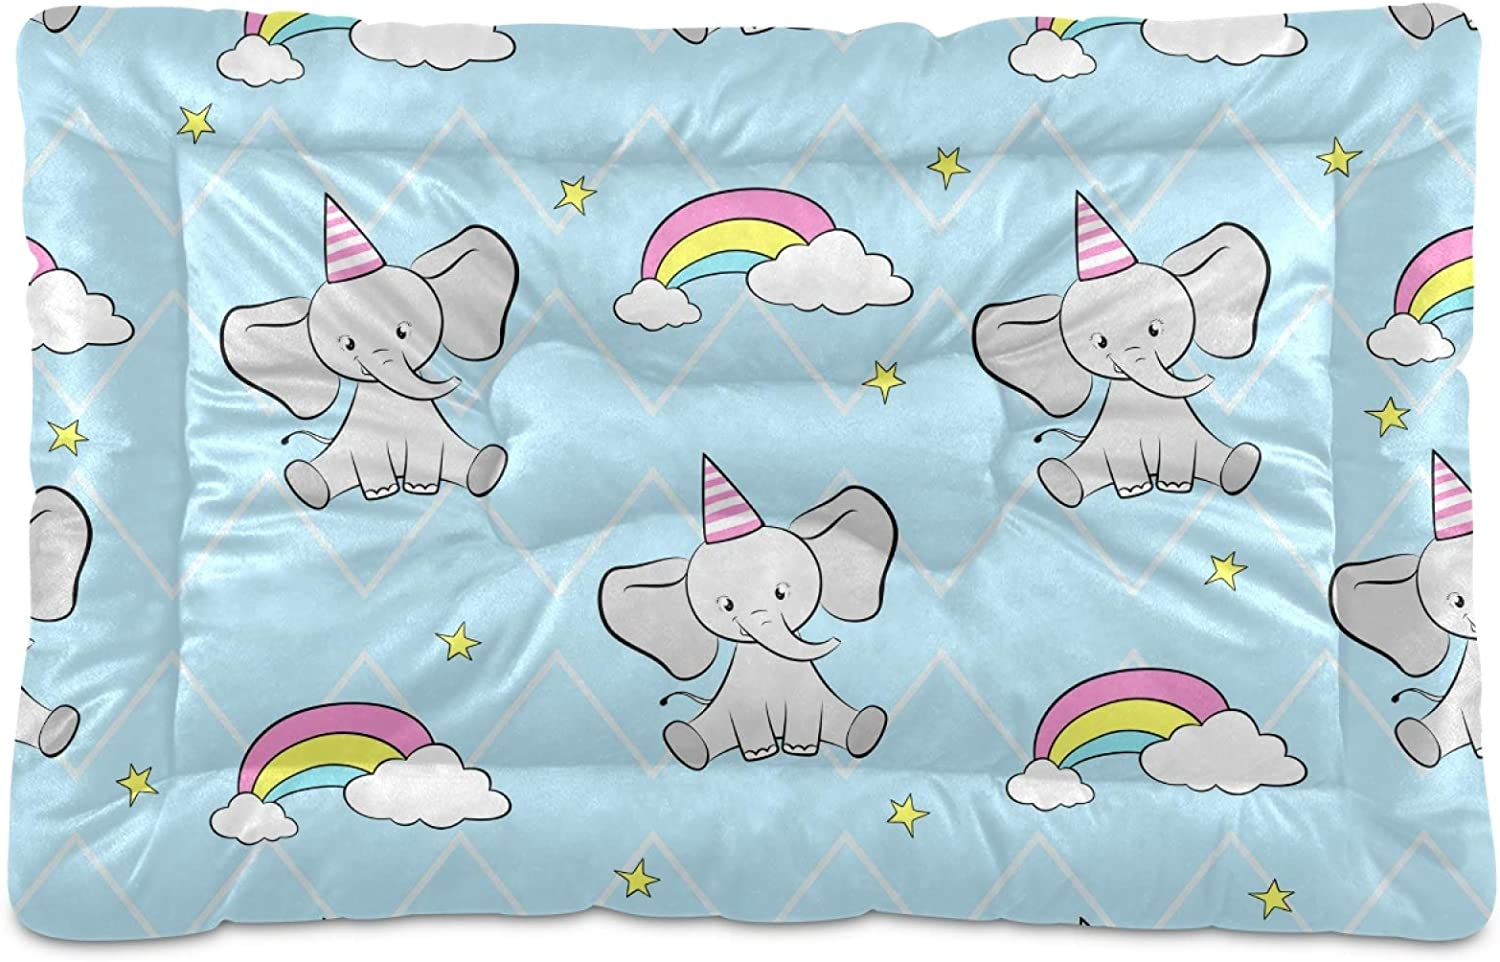 Dog Bed Mat Cute Ranking TOP18 Elephant Pet Kennel Pad Slip Mac New item Non Crate Soft